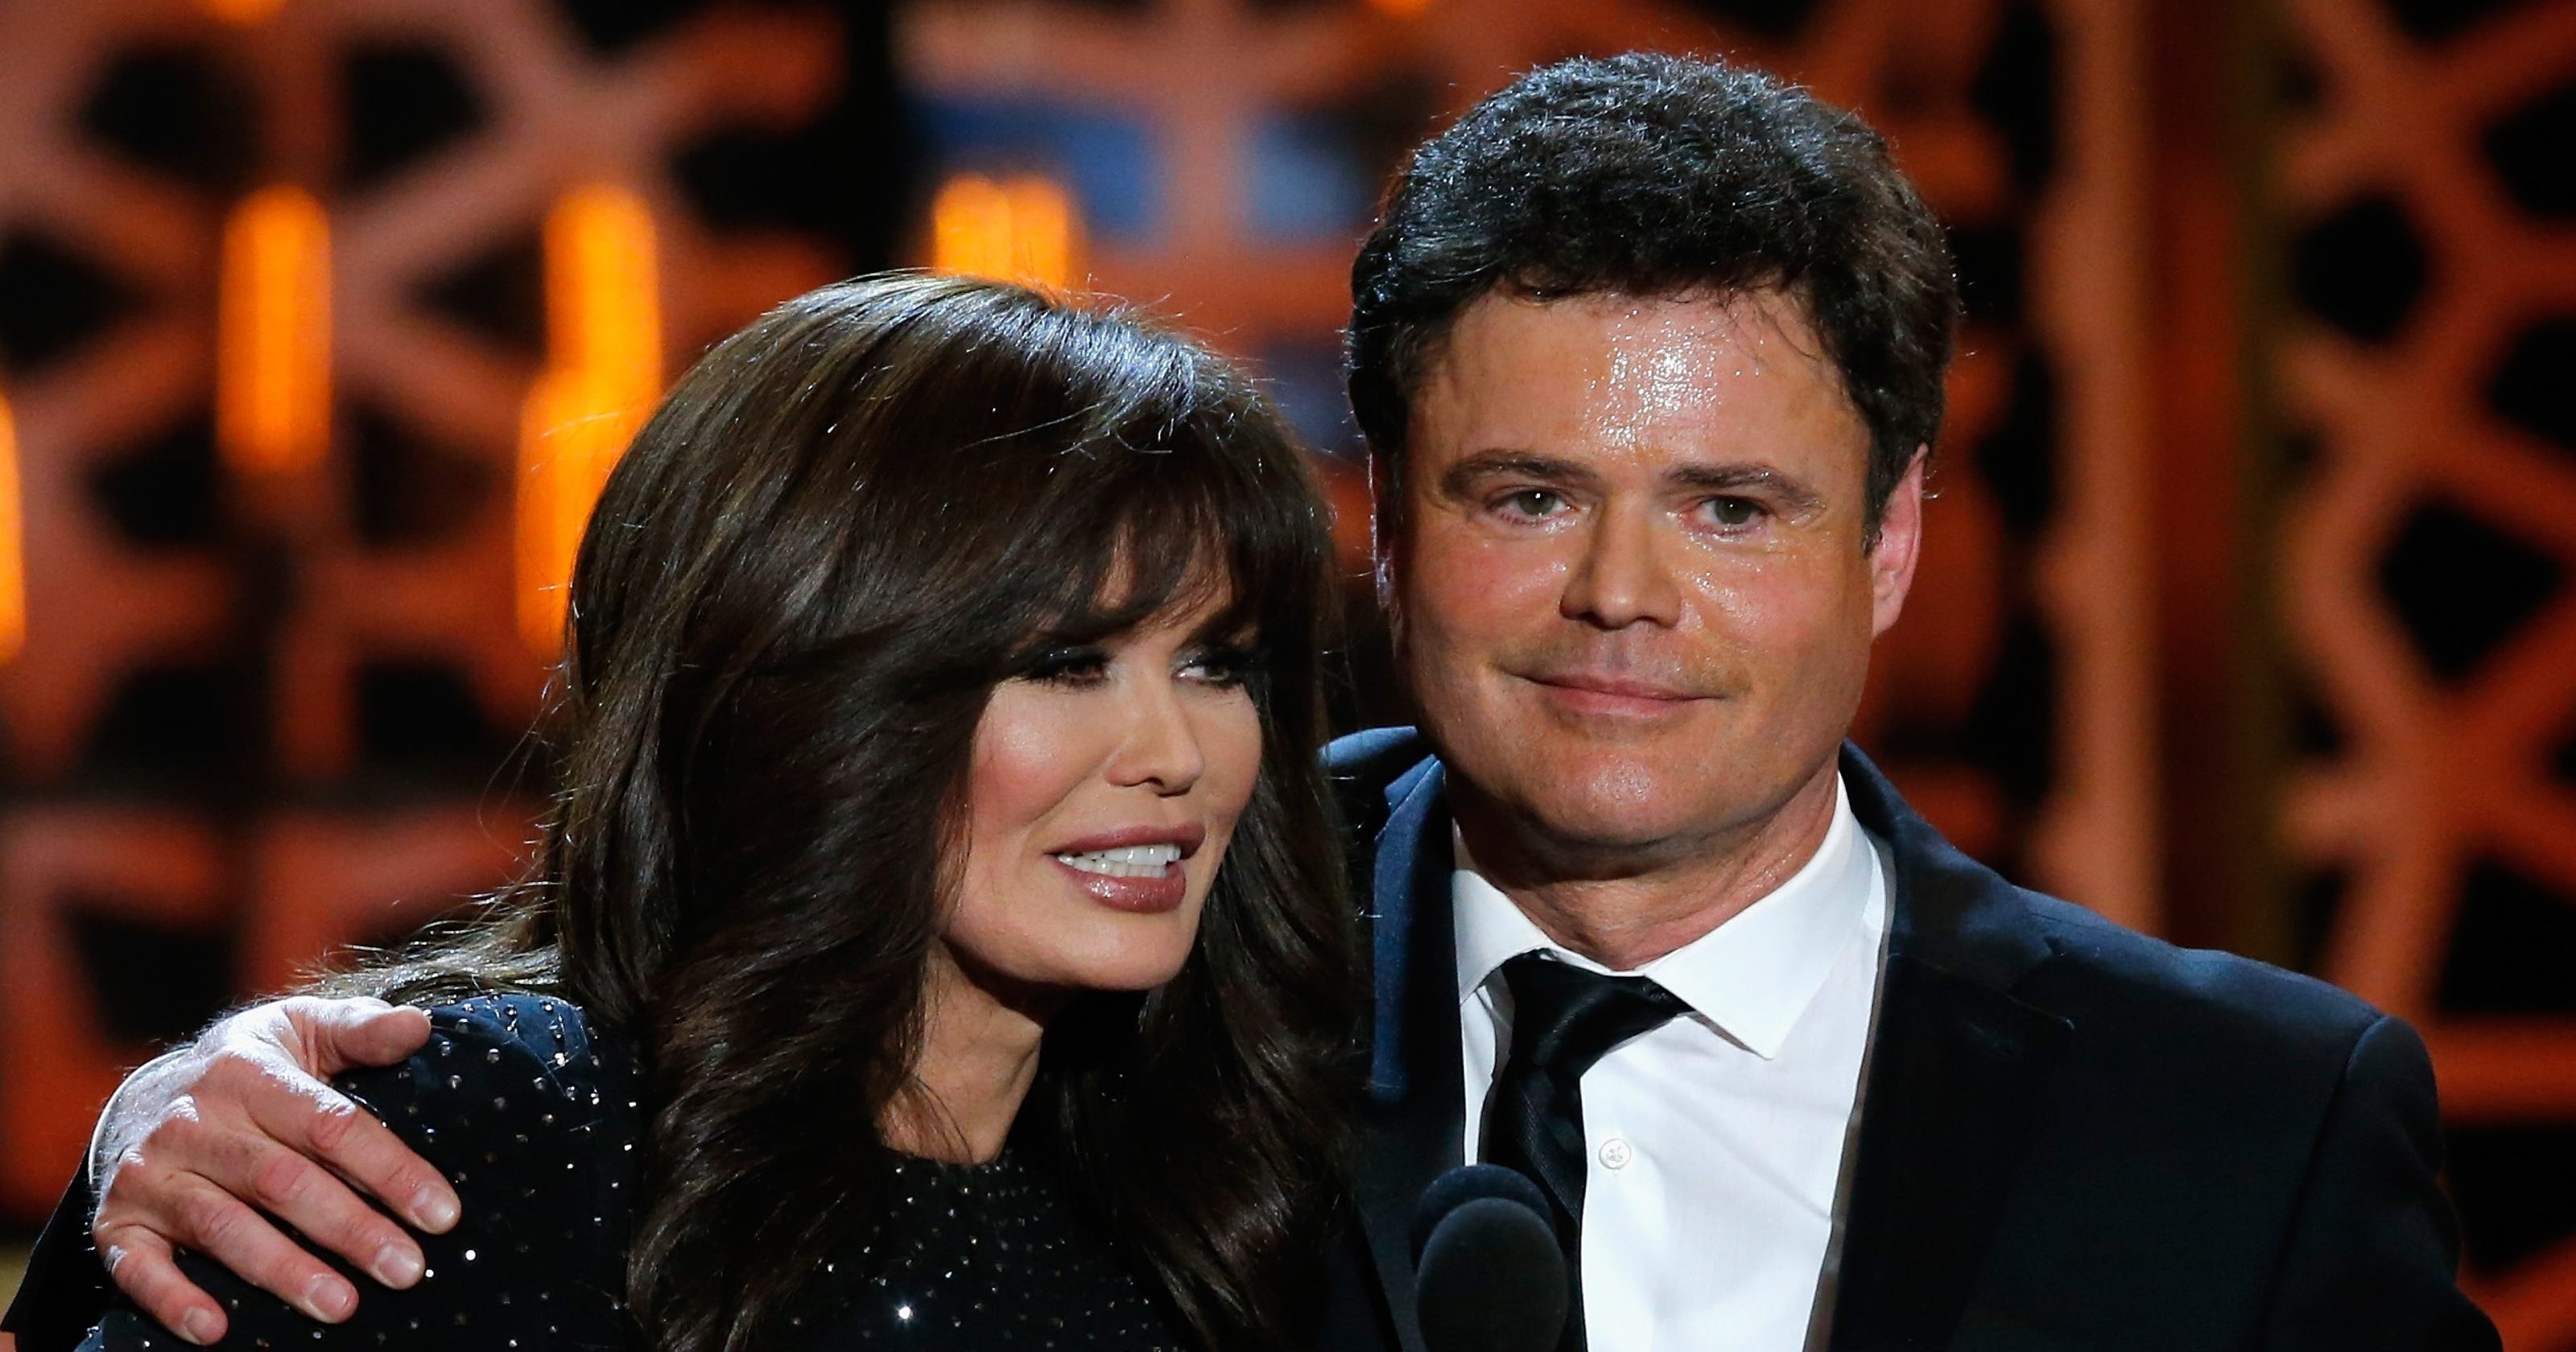 Donny Osmond Tells Us Whos The Boss Him Or Marie